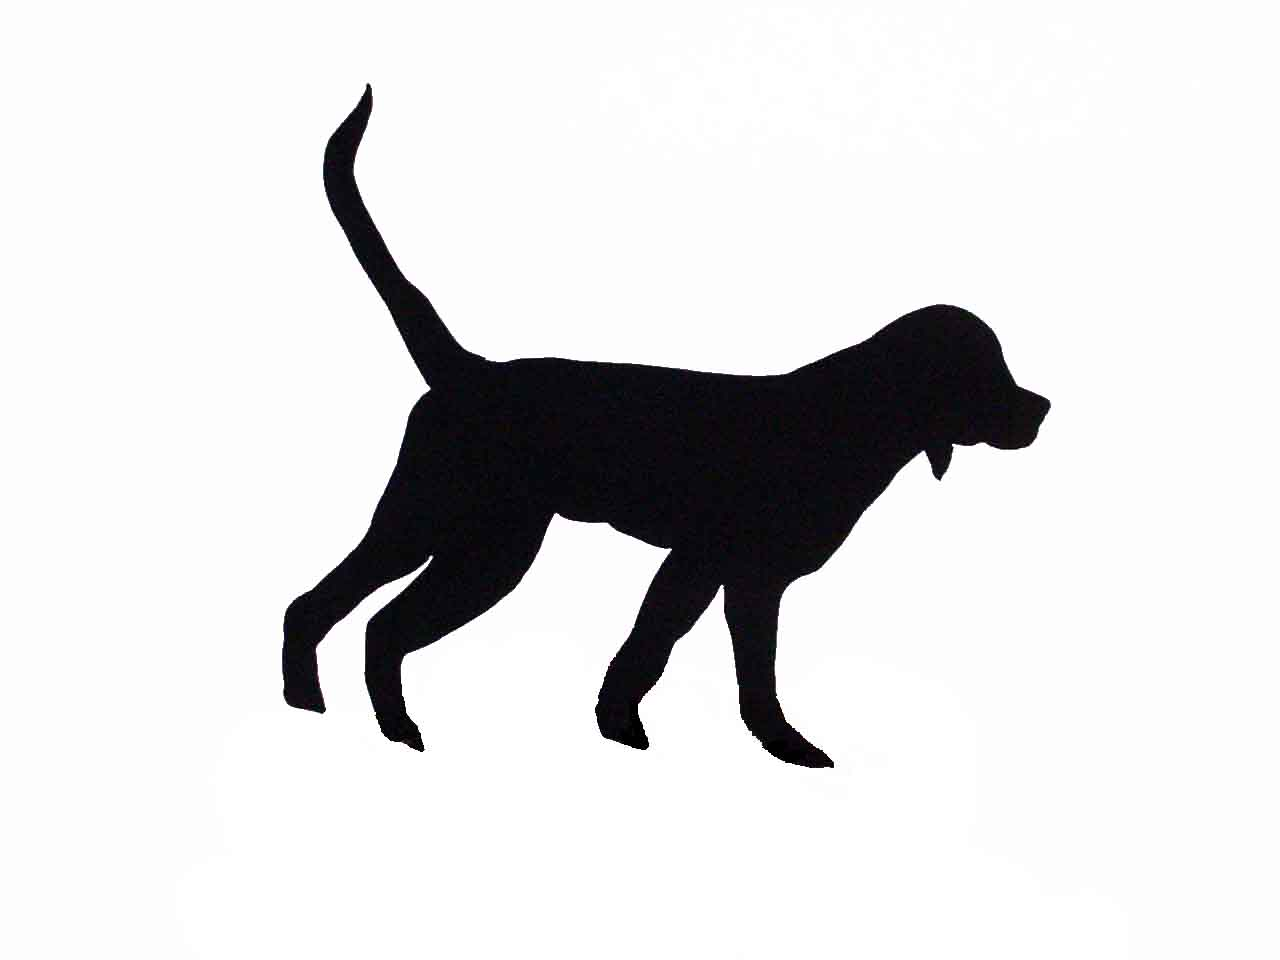 1280x960 Retriever Silhouette Vector